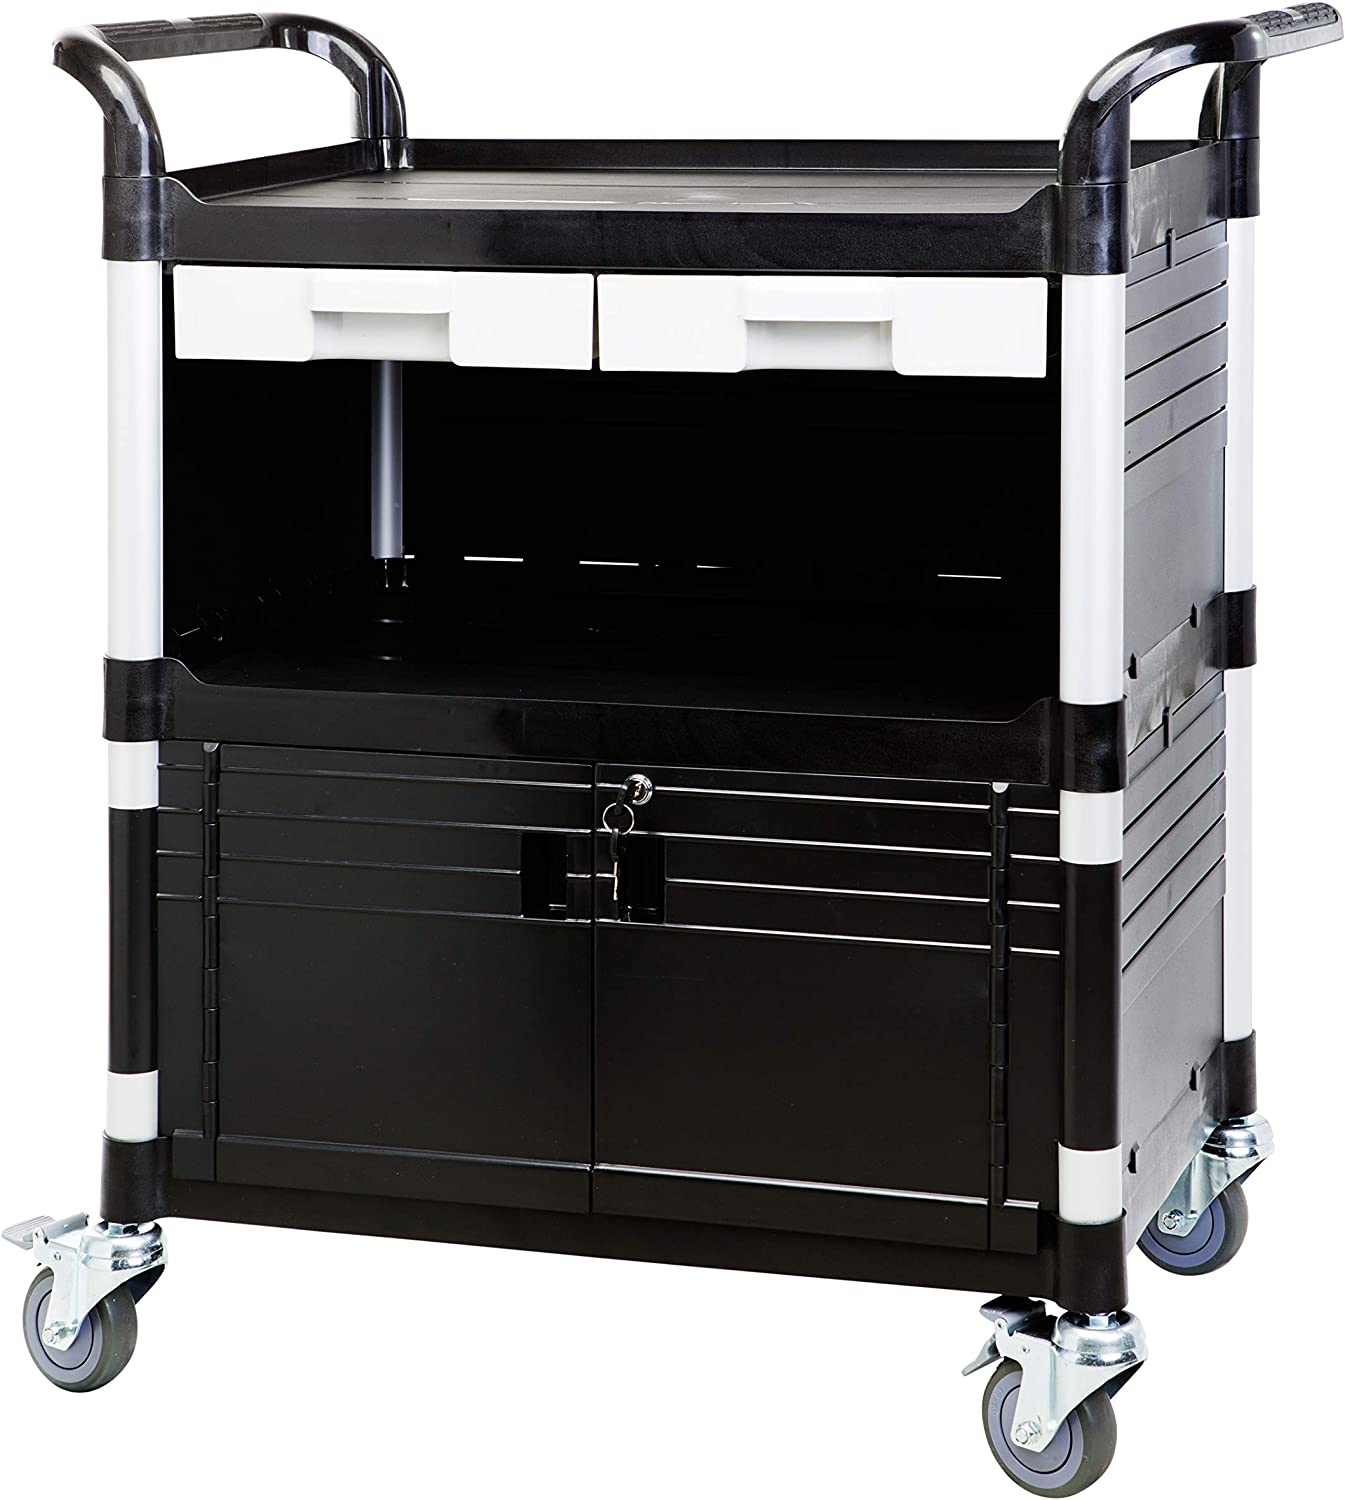 JaboEquip Commercial Heavy Duty Utility Carts, 606 lbs Load Cap.for Lab and Hospitality